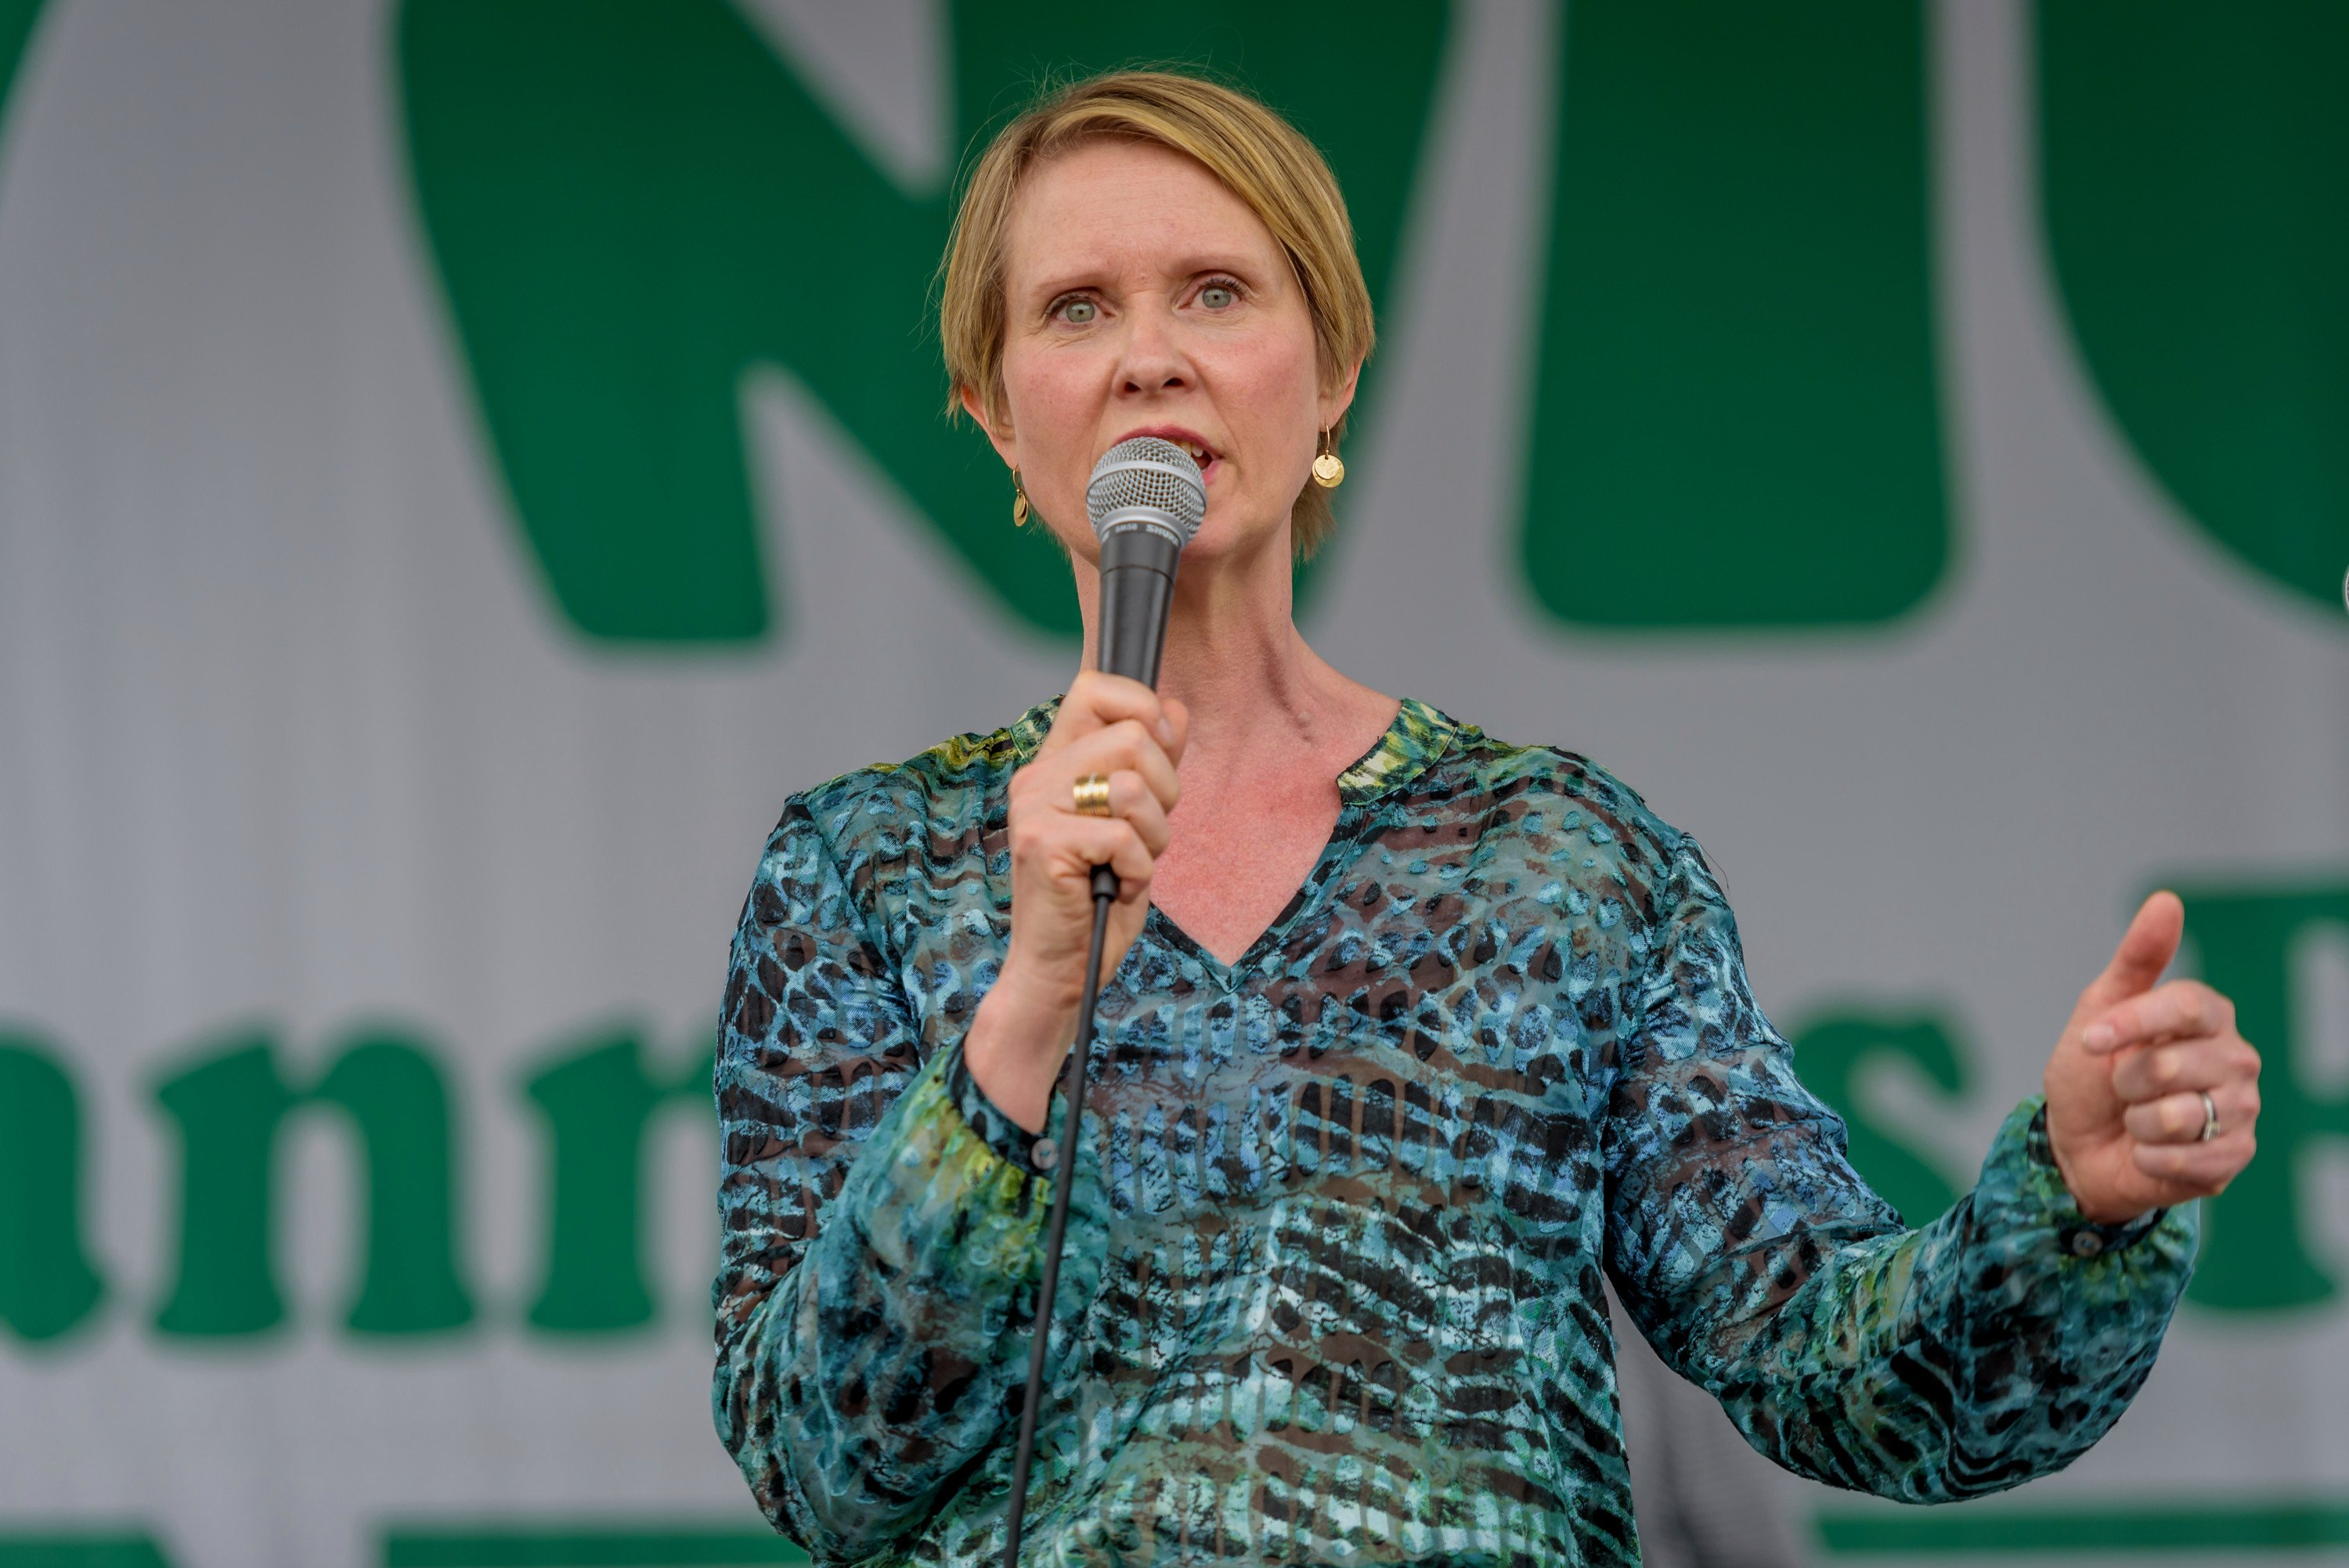 Cynthia Nixon wants to use marijuana licenses as 'reparations'